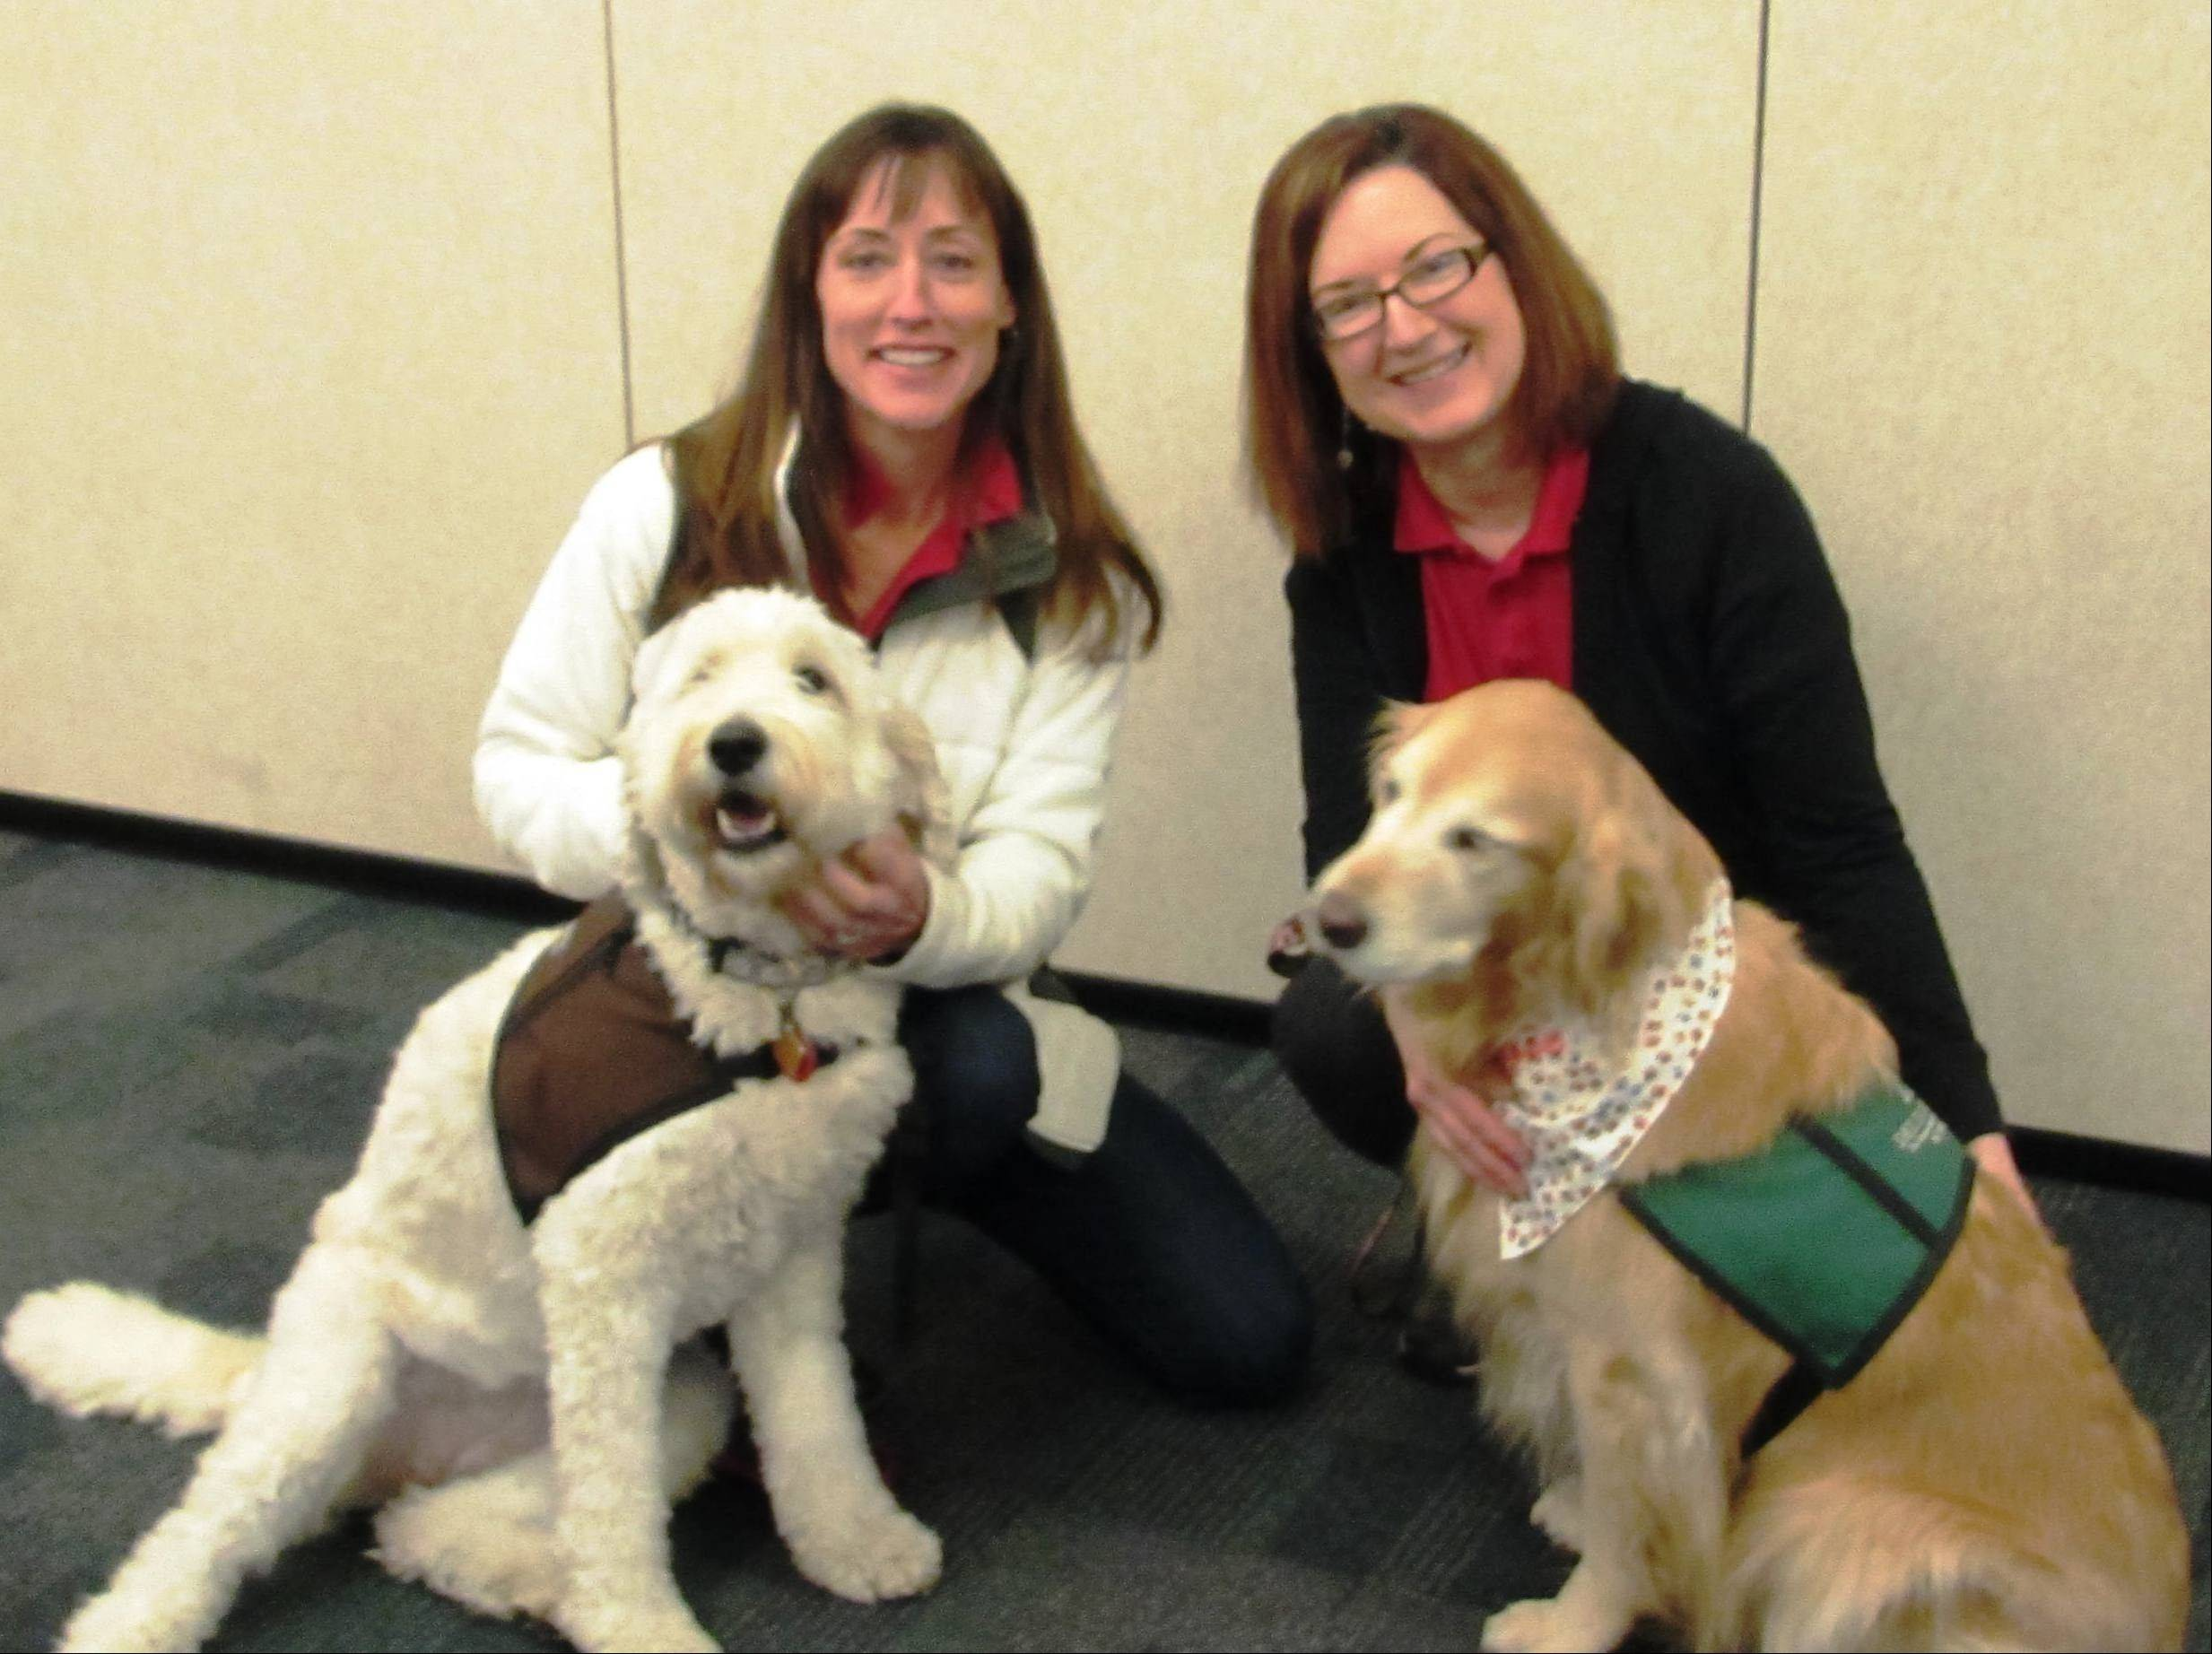 The Hinsdale Humane Society brought in trained therapy dogs to help teens deal with the stress of final exams while studying this weekend at the Downers Grove Public Library. Gay Pollitt, left, with her dog, Delilah, and Mary Beth Turek with her dog, Maggie, were part of a team that visited with nearly 200 students.